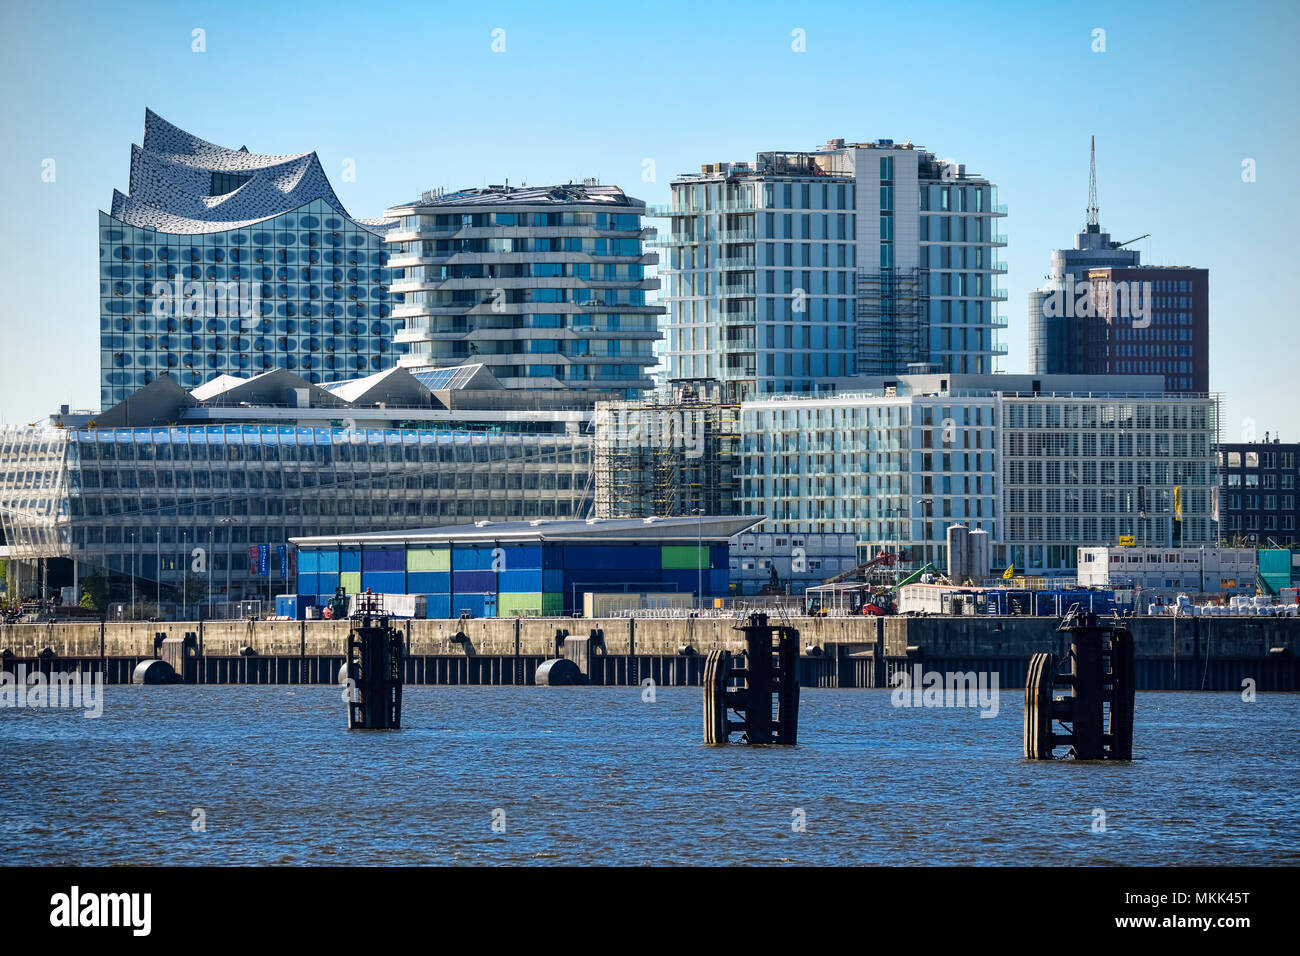 Elbe philharmonic hall, residential buildings and modern office buildings in Hamburg, Germany - Stock Image